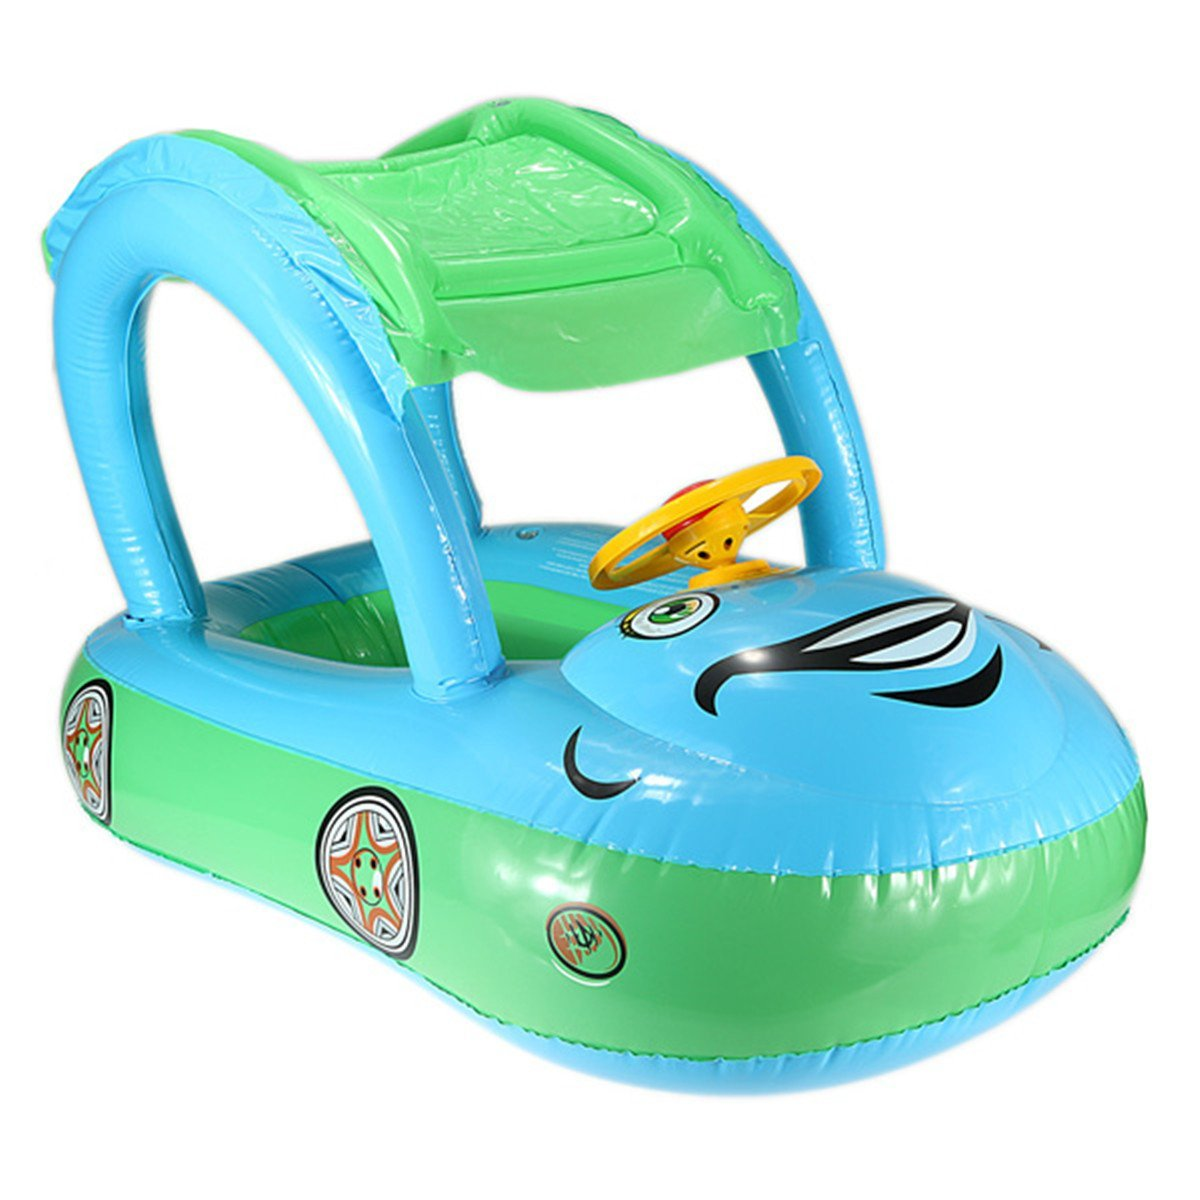 Cheap Baby Float Car, find Baby Float Car deals on line at Alibaba.com